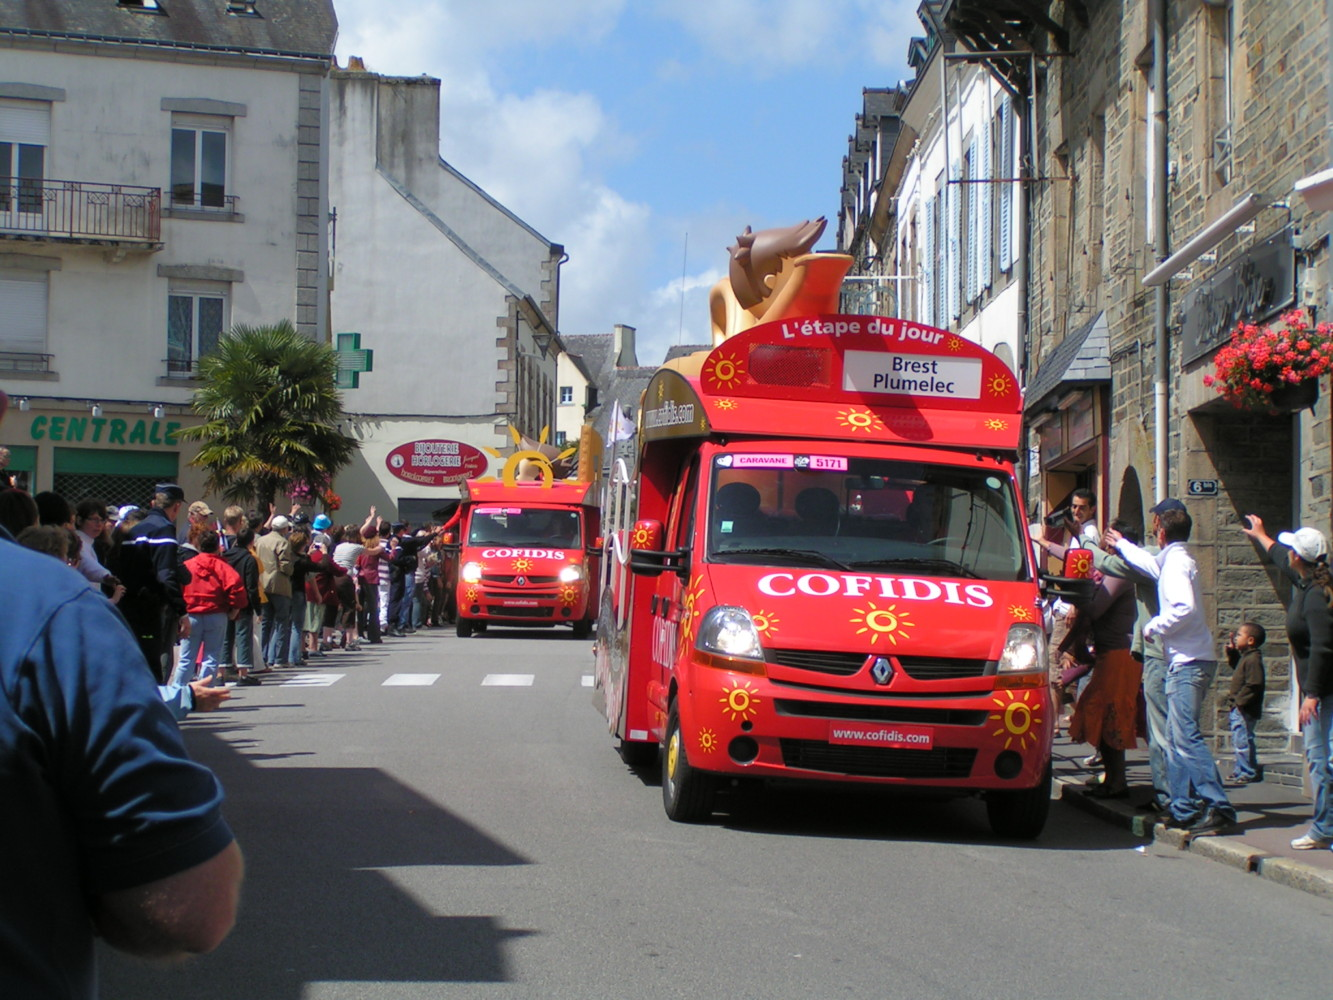 TOUR-DE-FRANCE-2008-CHATEAUNEUF-DU-FAOU-6